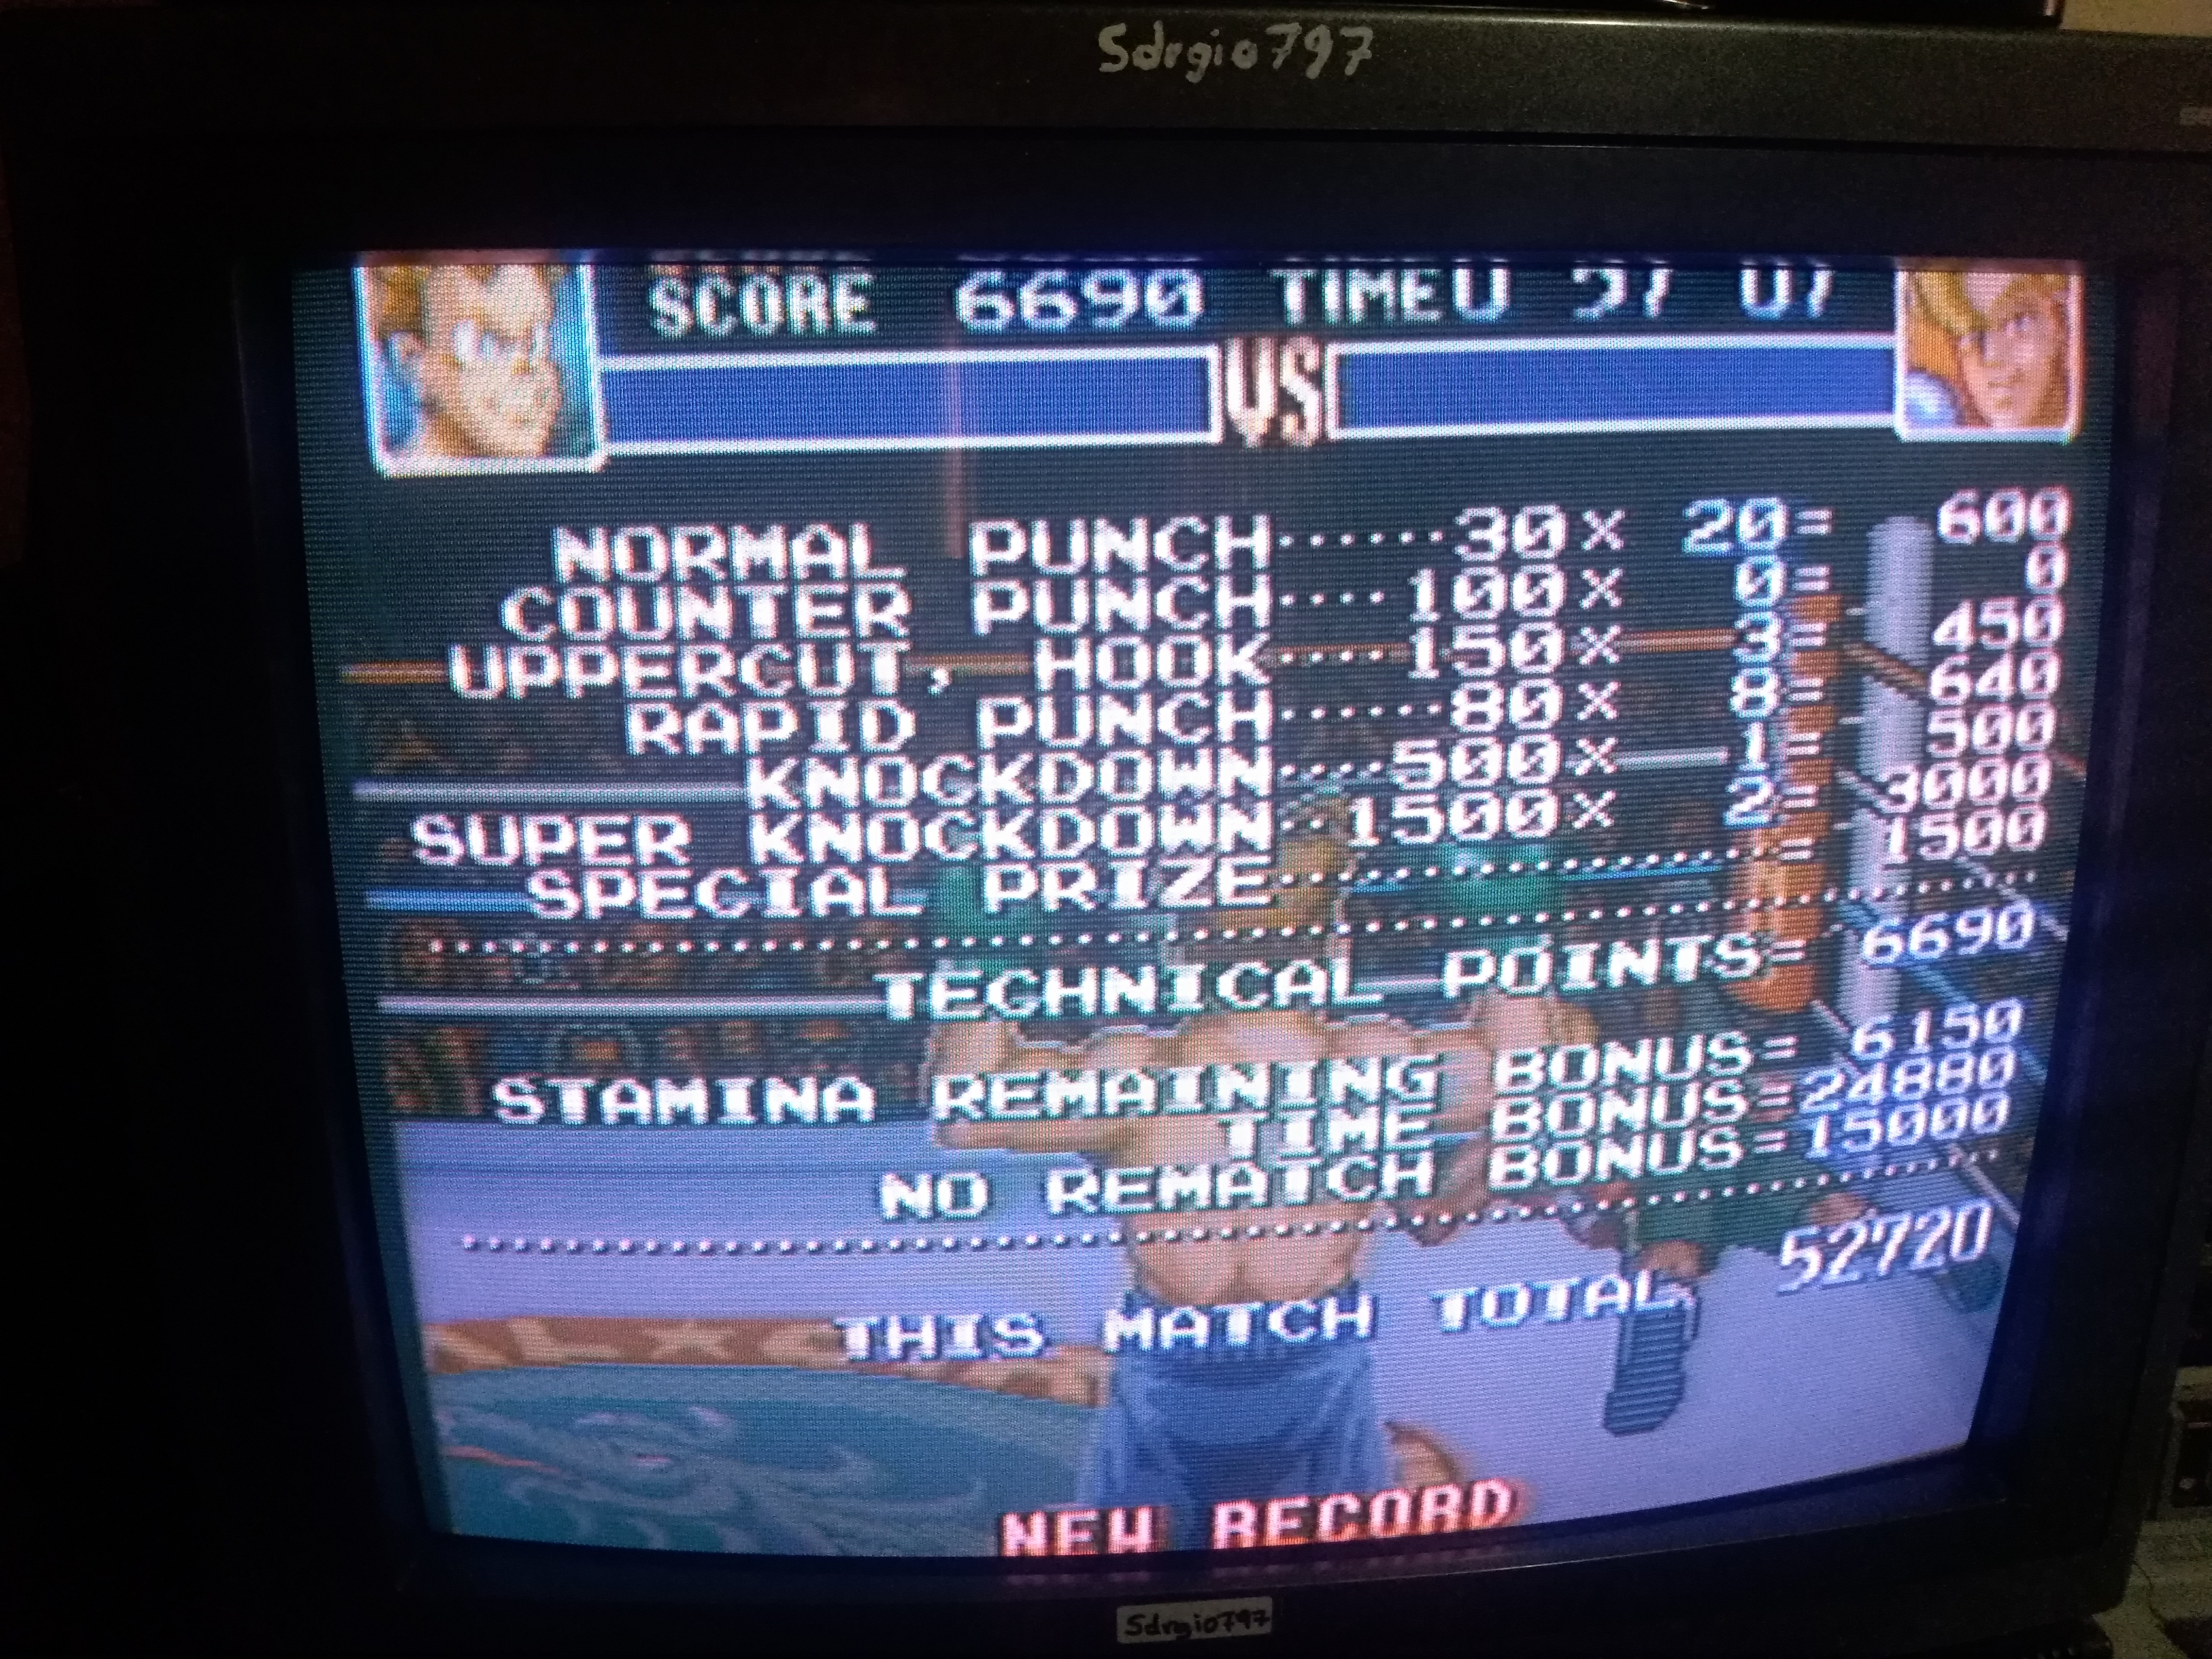 Sdrgio797: Super Punch-Out!! [Narcis Prince] (SNES/Super Famicom) 52,720 points on 2020-07-06 15:30:33